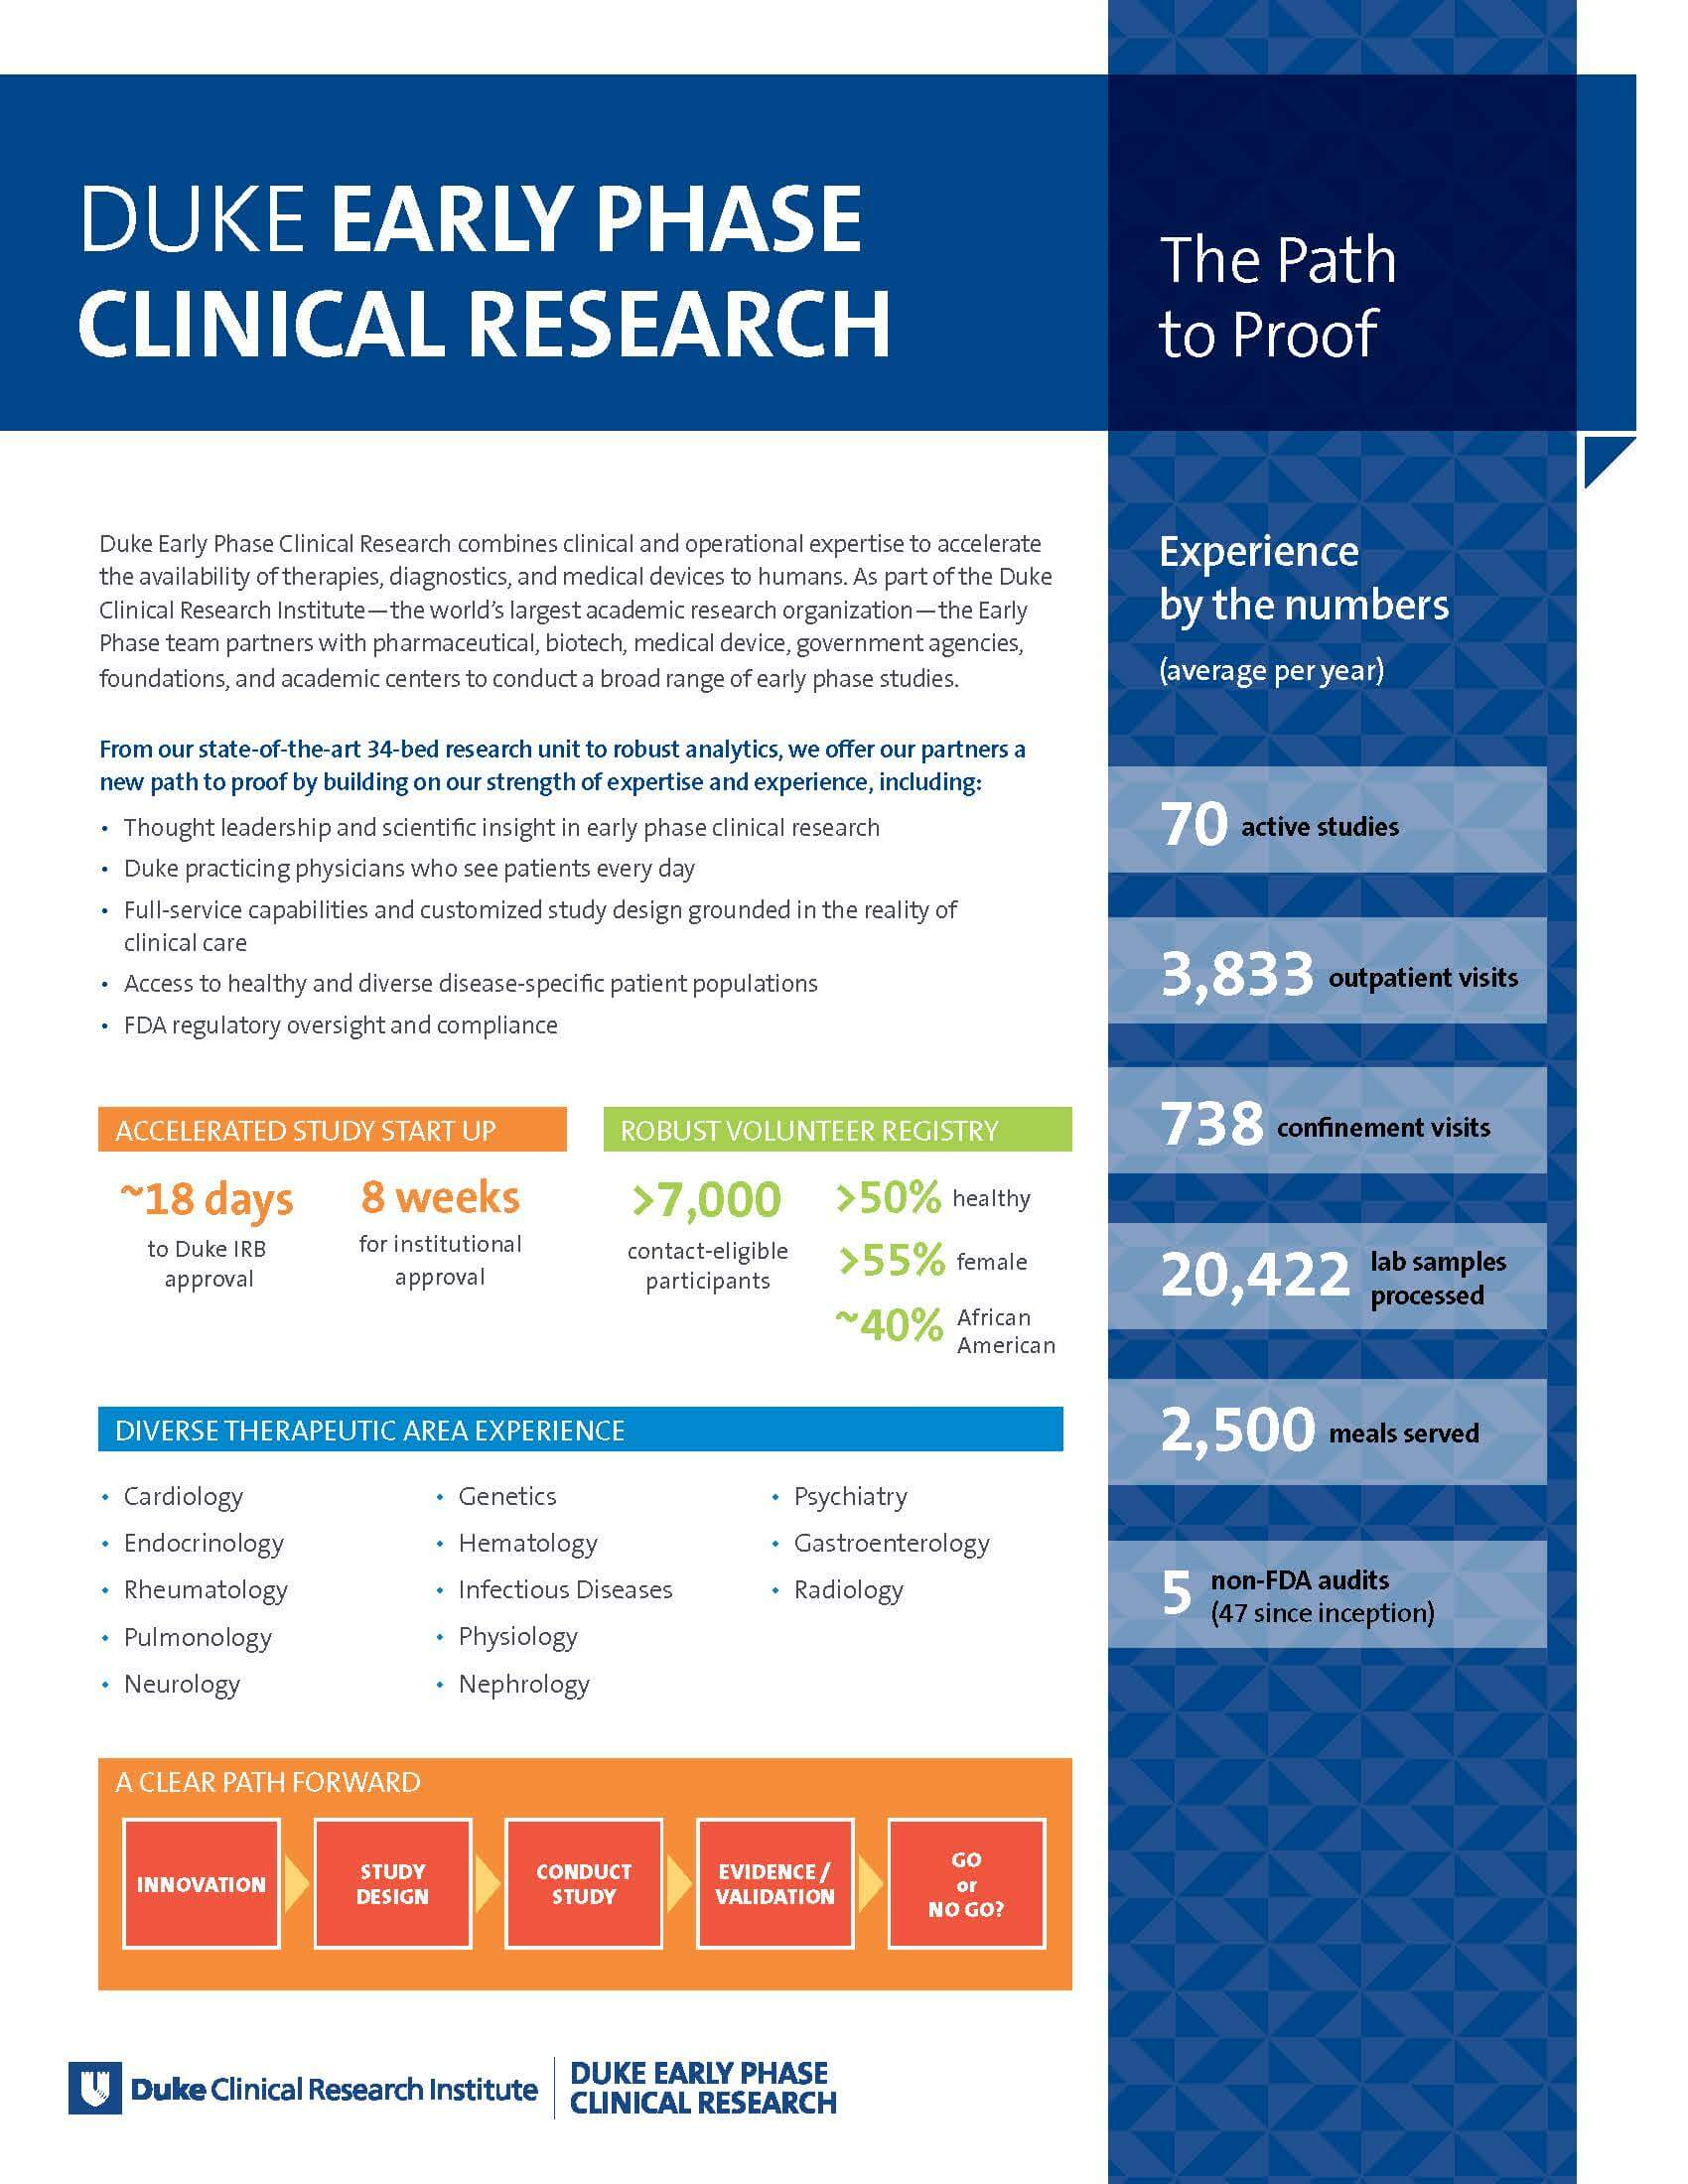 Duke Early Phase Clinical Research